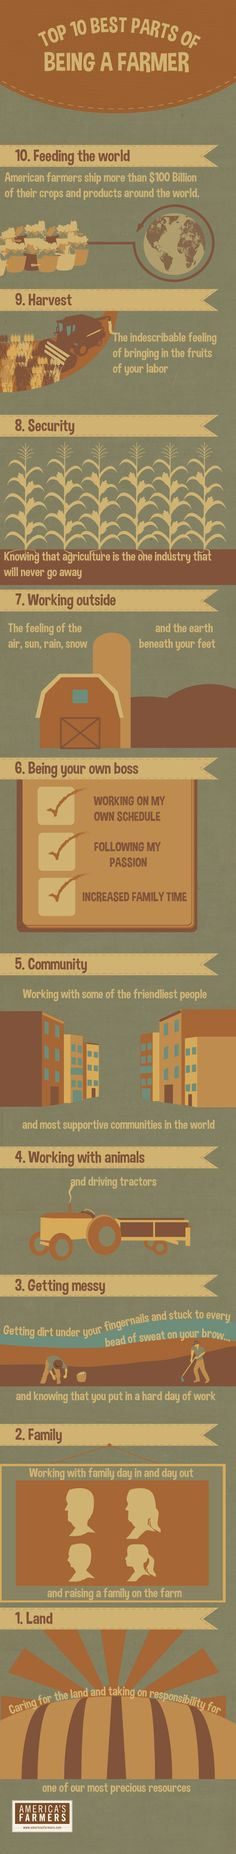 What's the best part of being a farmer? #infographic #rustic #farm